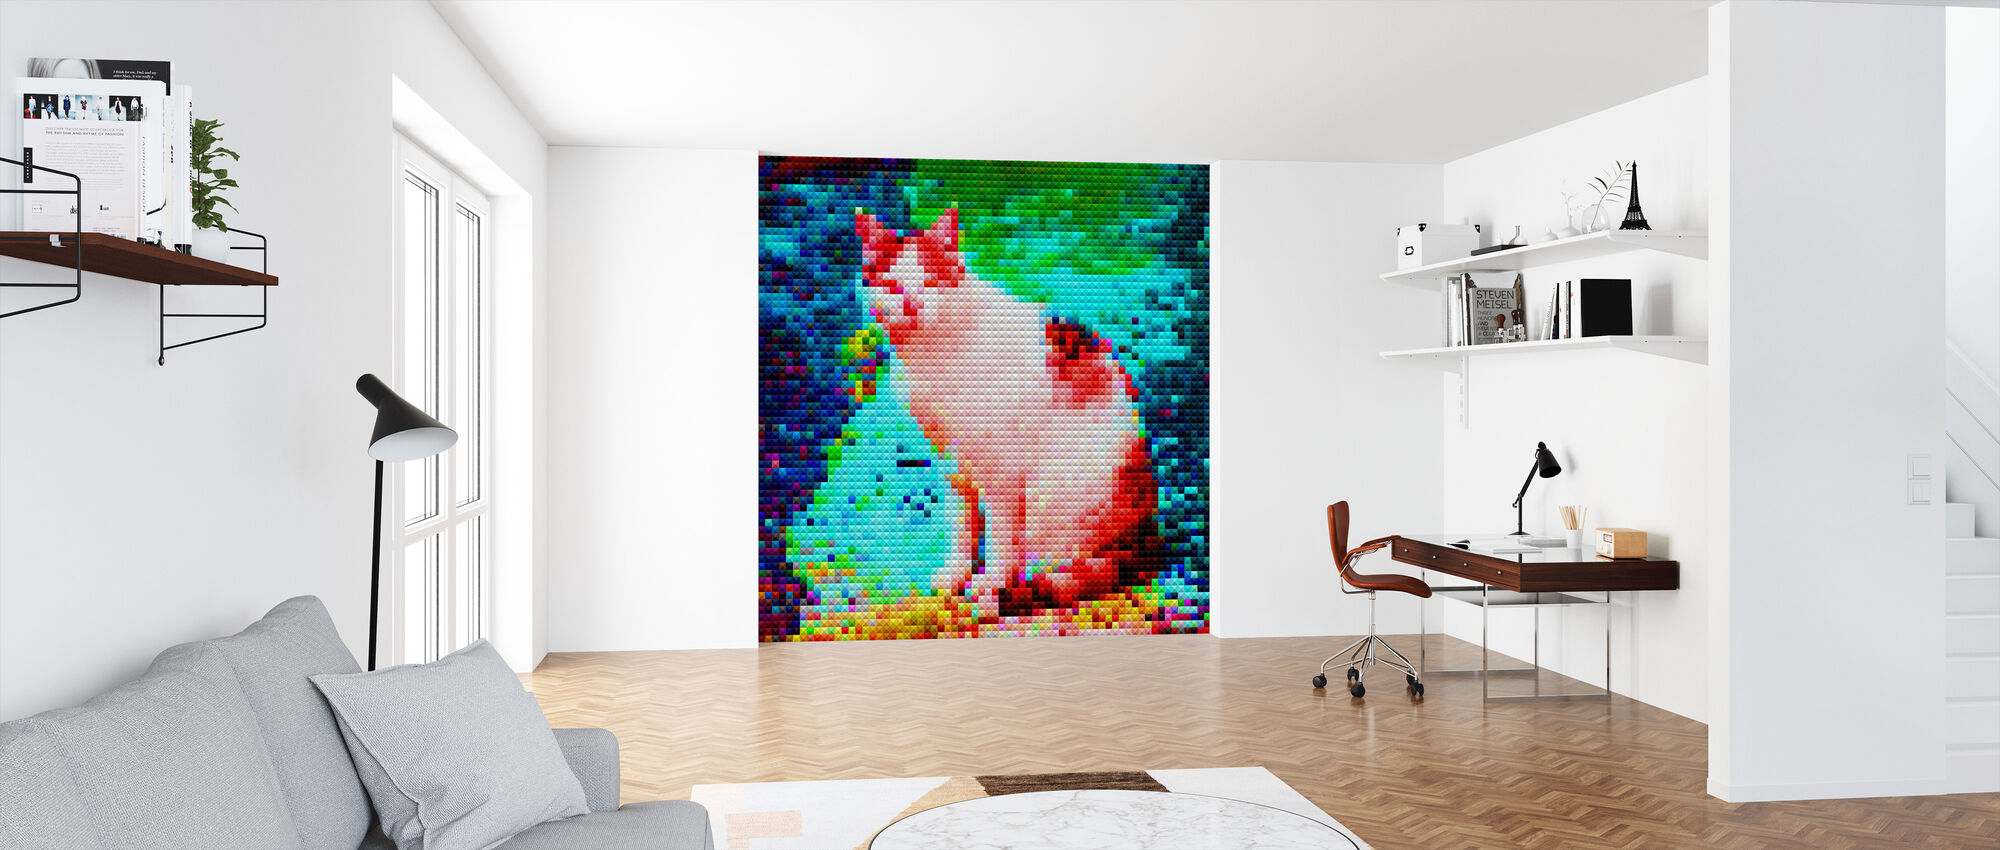 Mosaic Cat - Wallpaper - Office